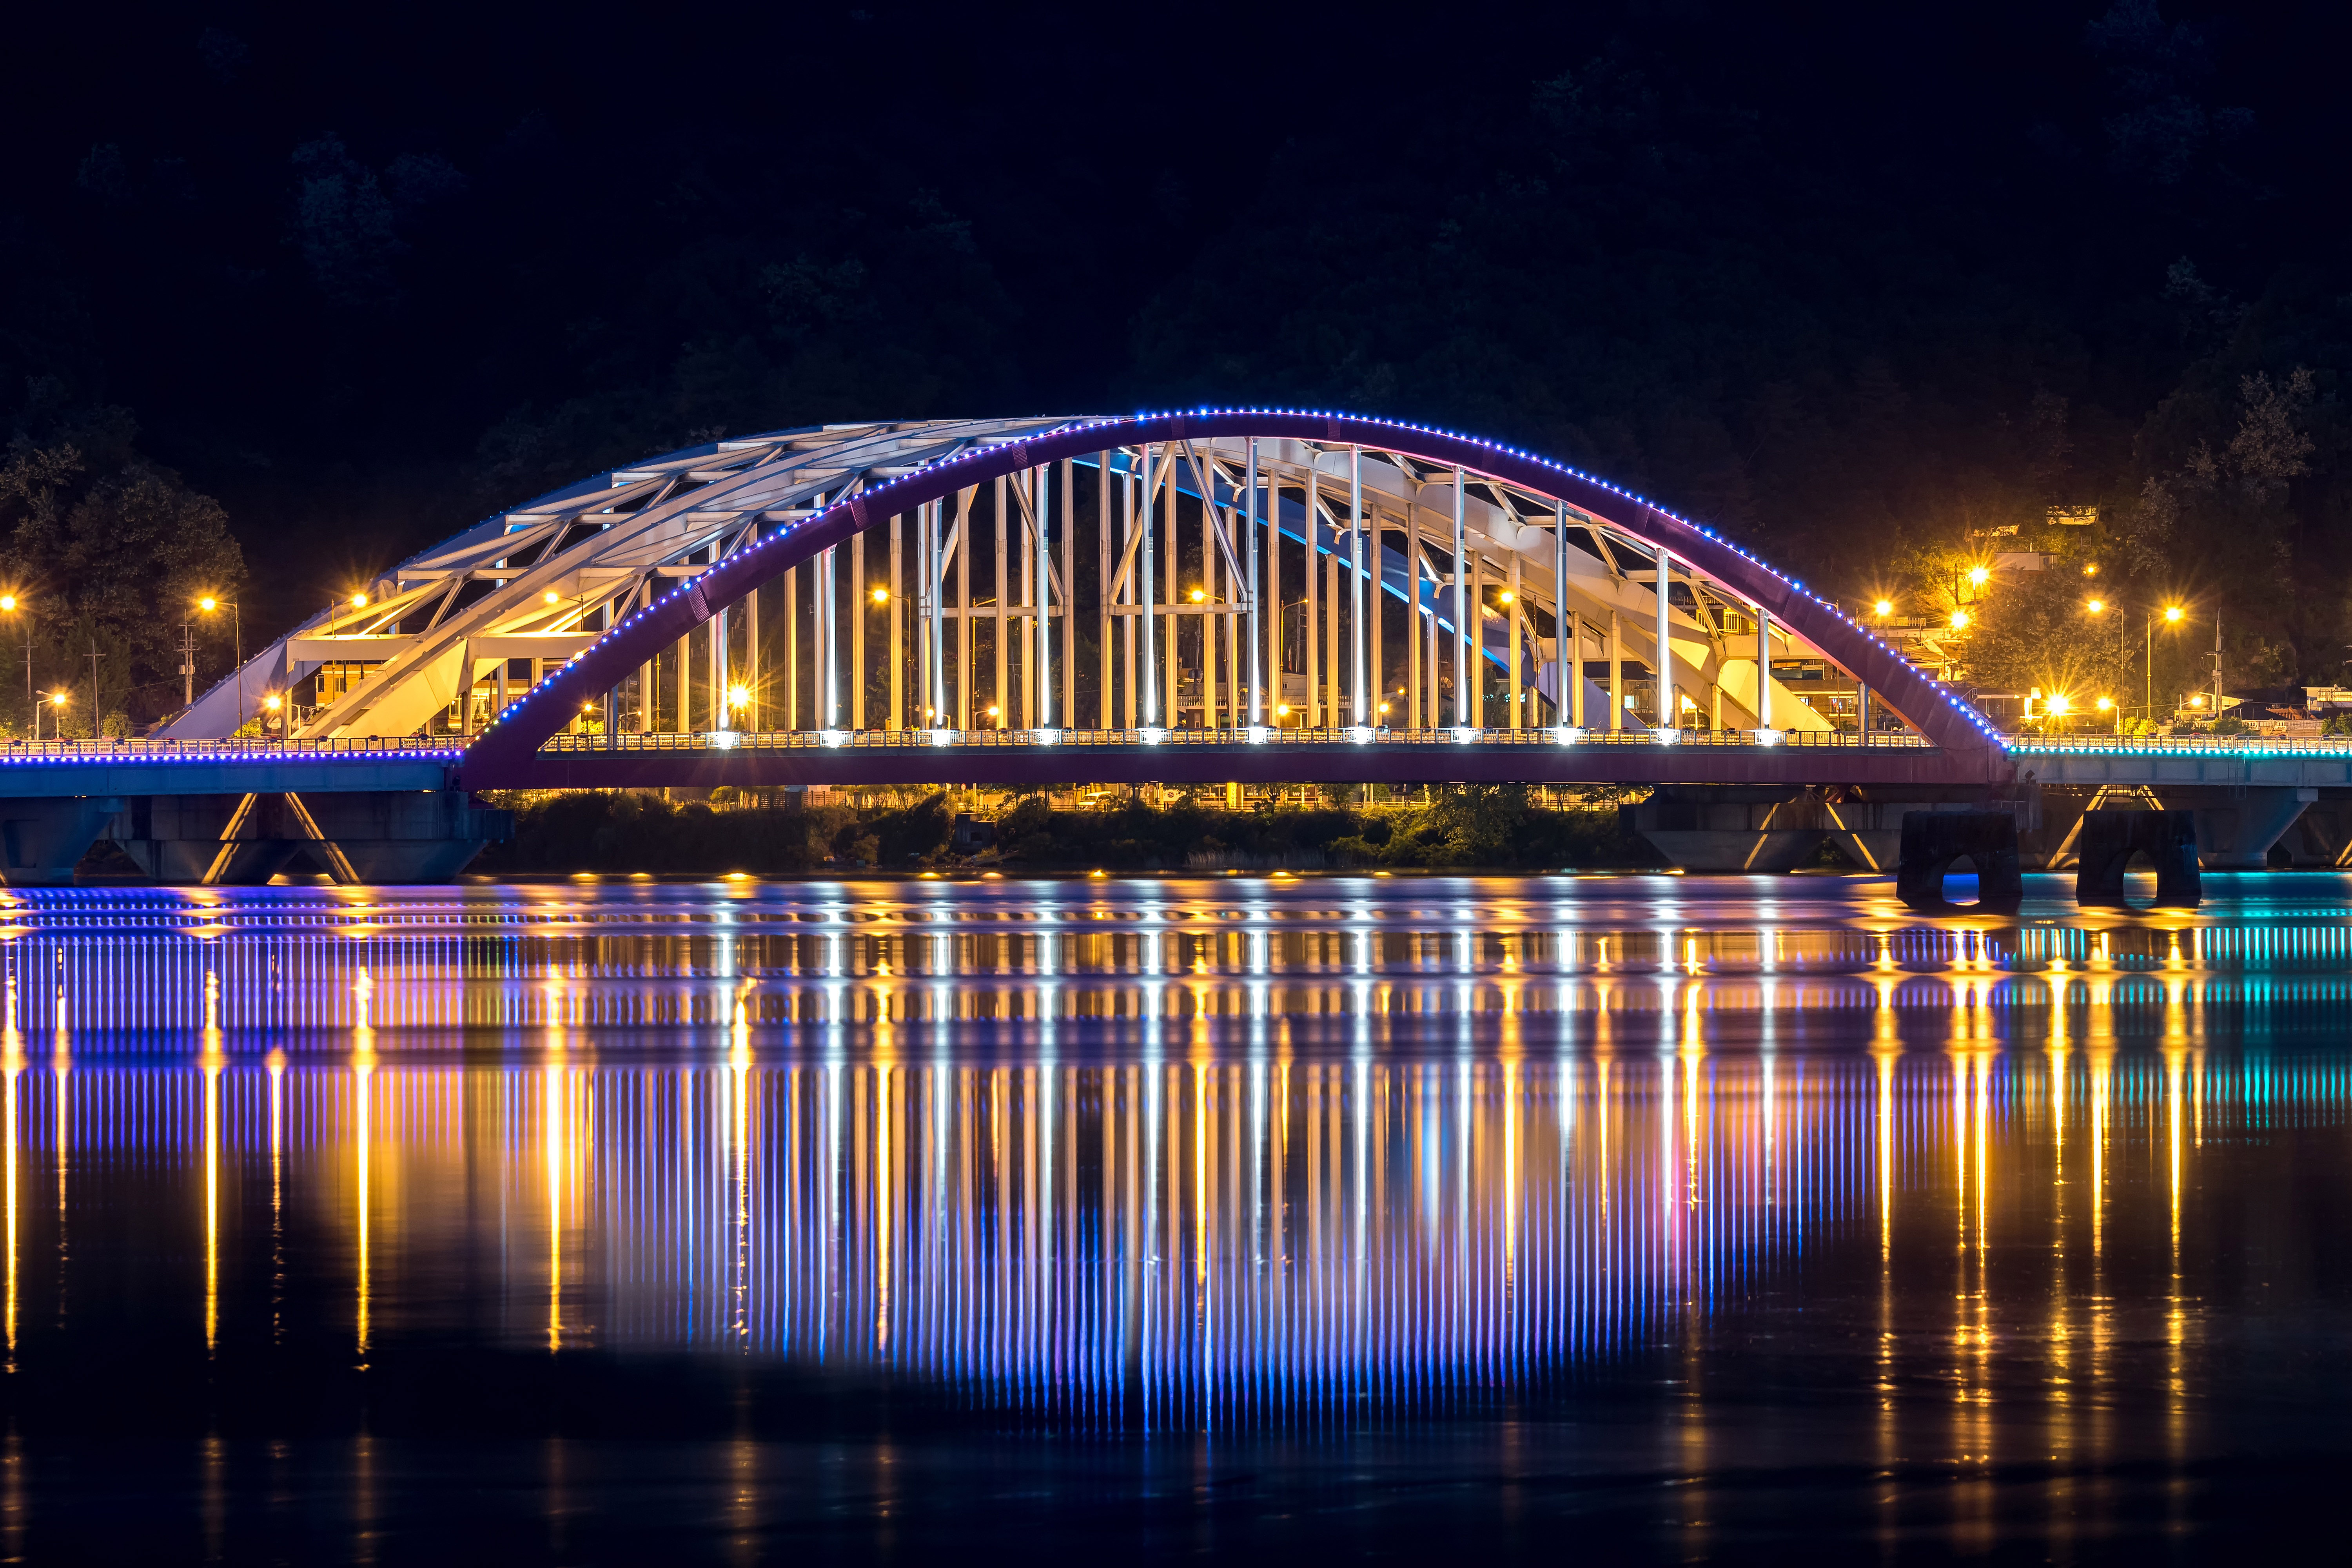 Free ... & Chuncheon Bridge lighted up at night in Seoul South Korea image ...